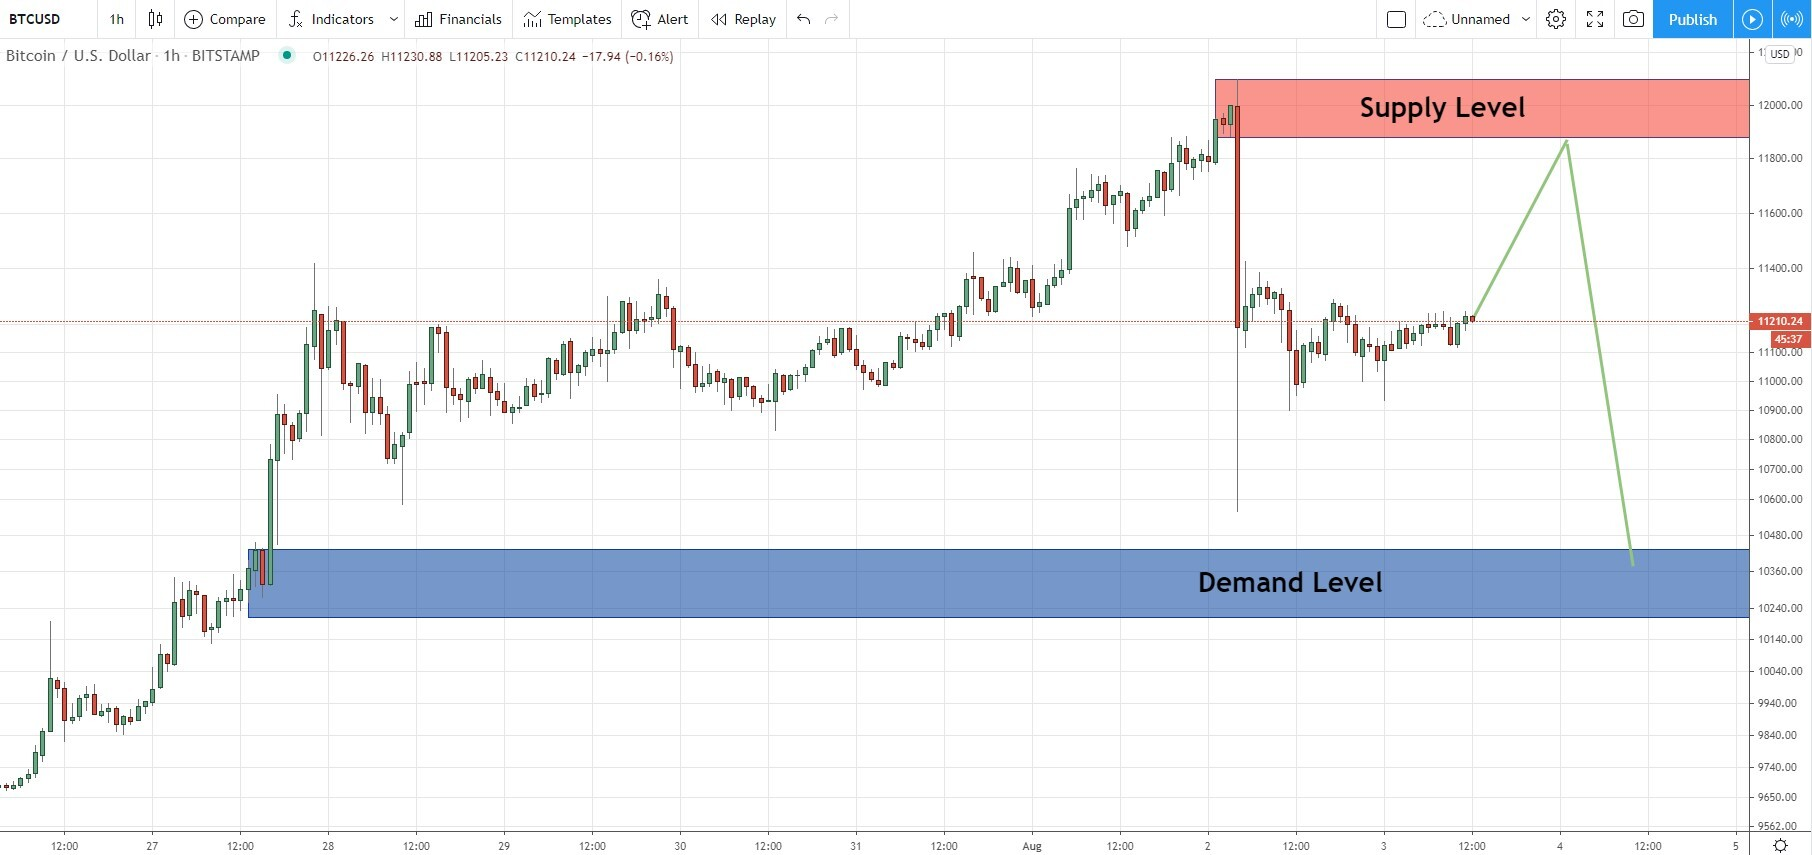 BTC/USD - A strong supply as a great level for sell position